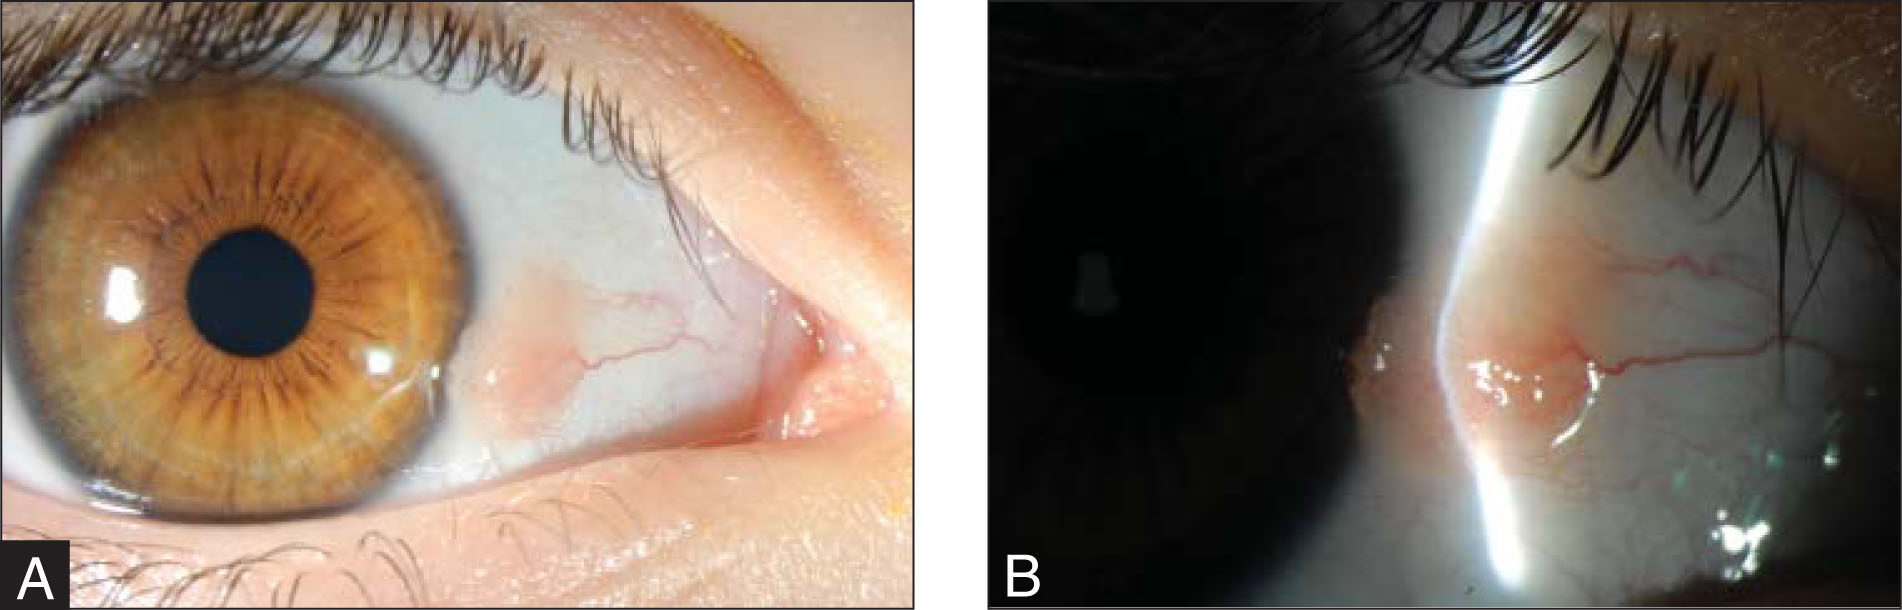 (A) Elevated, yellow-pink bulbar conjunctival lesion adjacent to the nasal limbus in a 9-year-old girl. (B) A dilated blood vessel extends from the medial canthus into its medial substance.